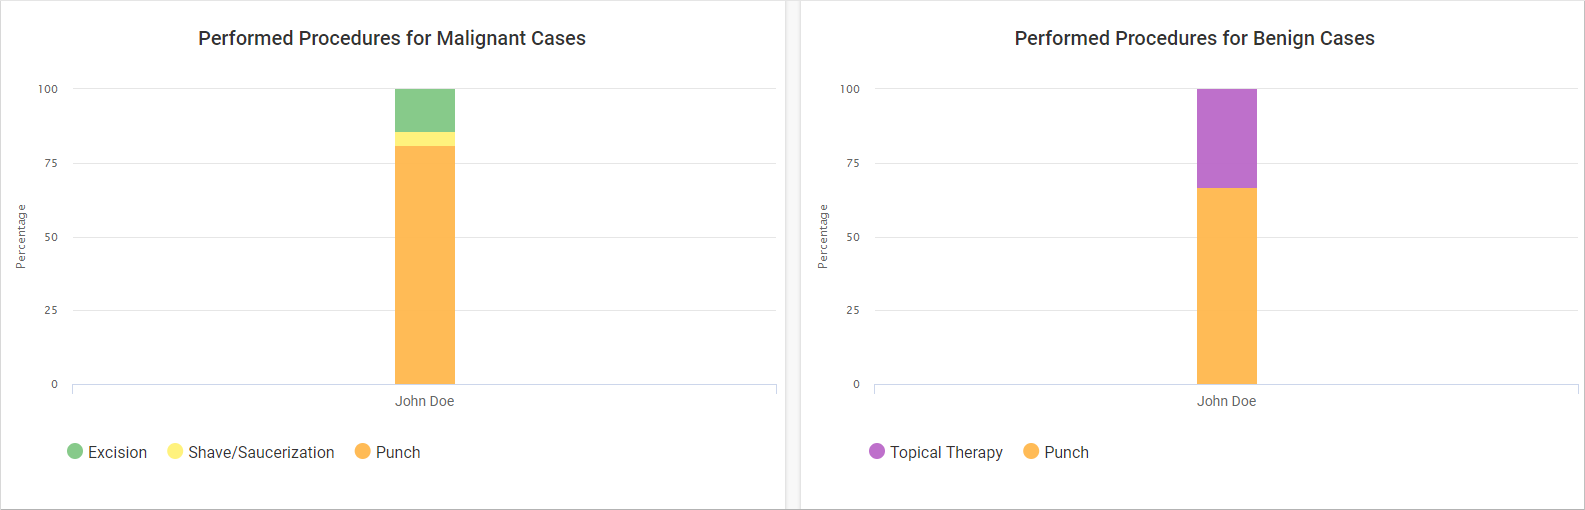 3._Audit_Reports_Performed_Procedures_Malignant_cases.PNG